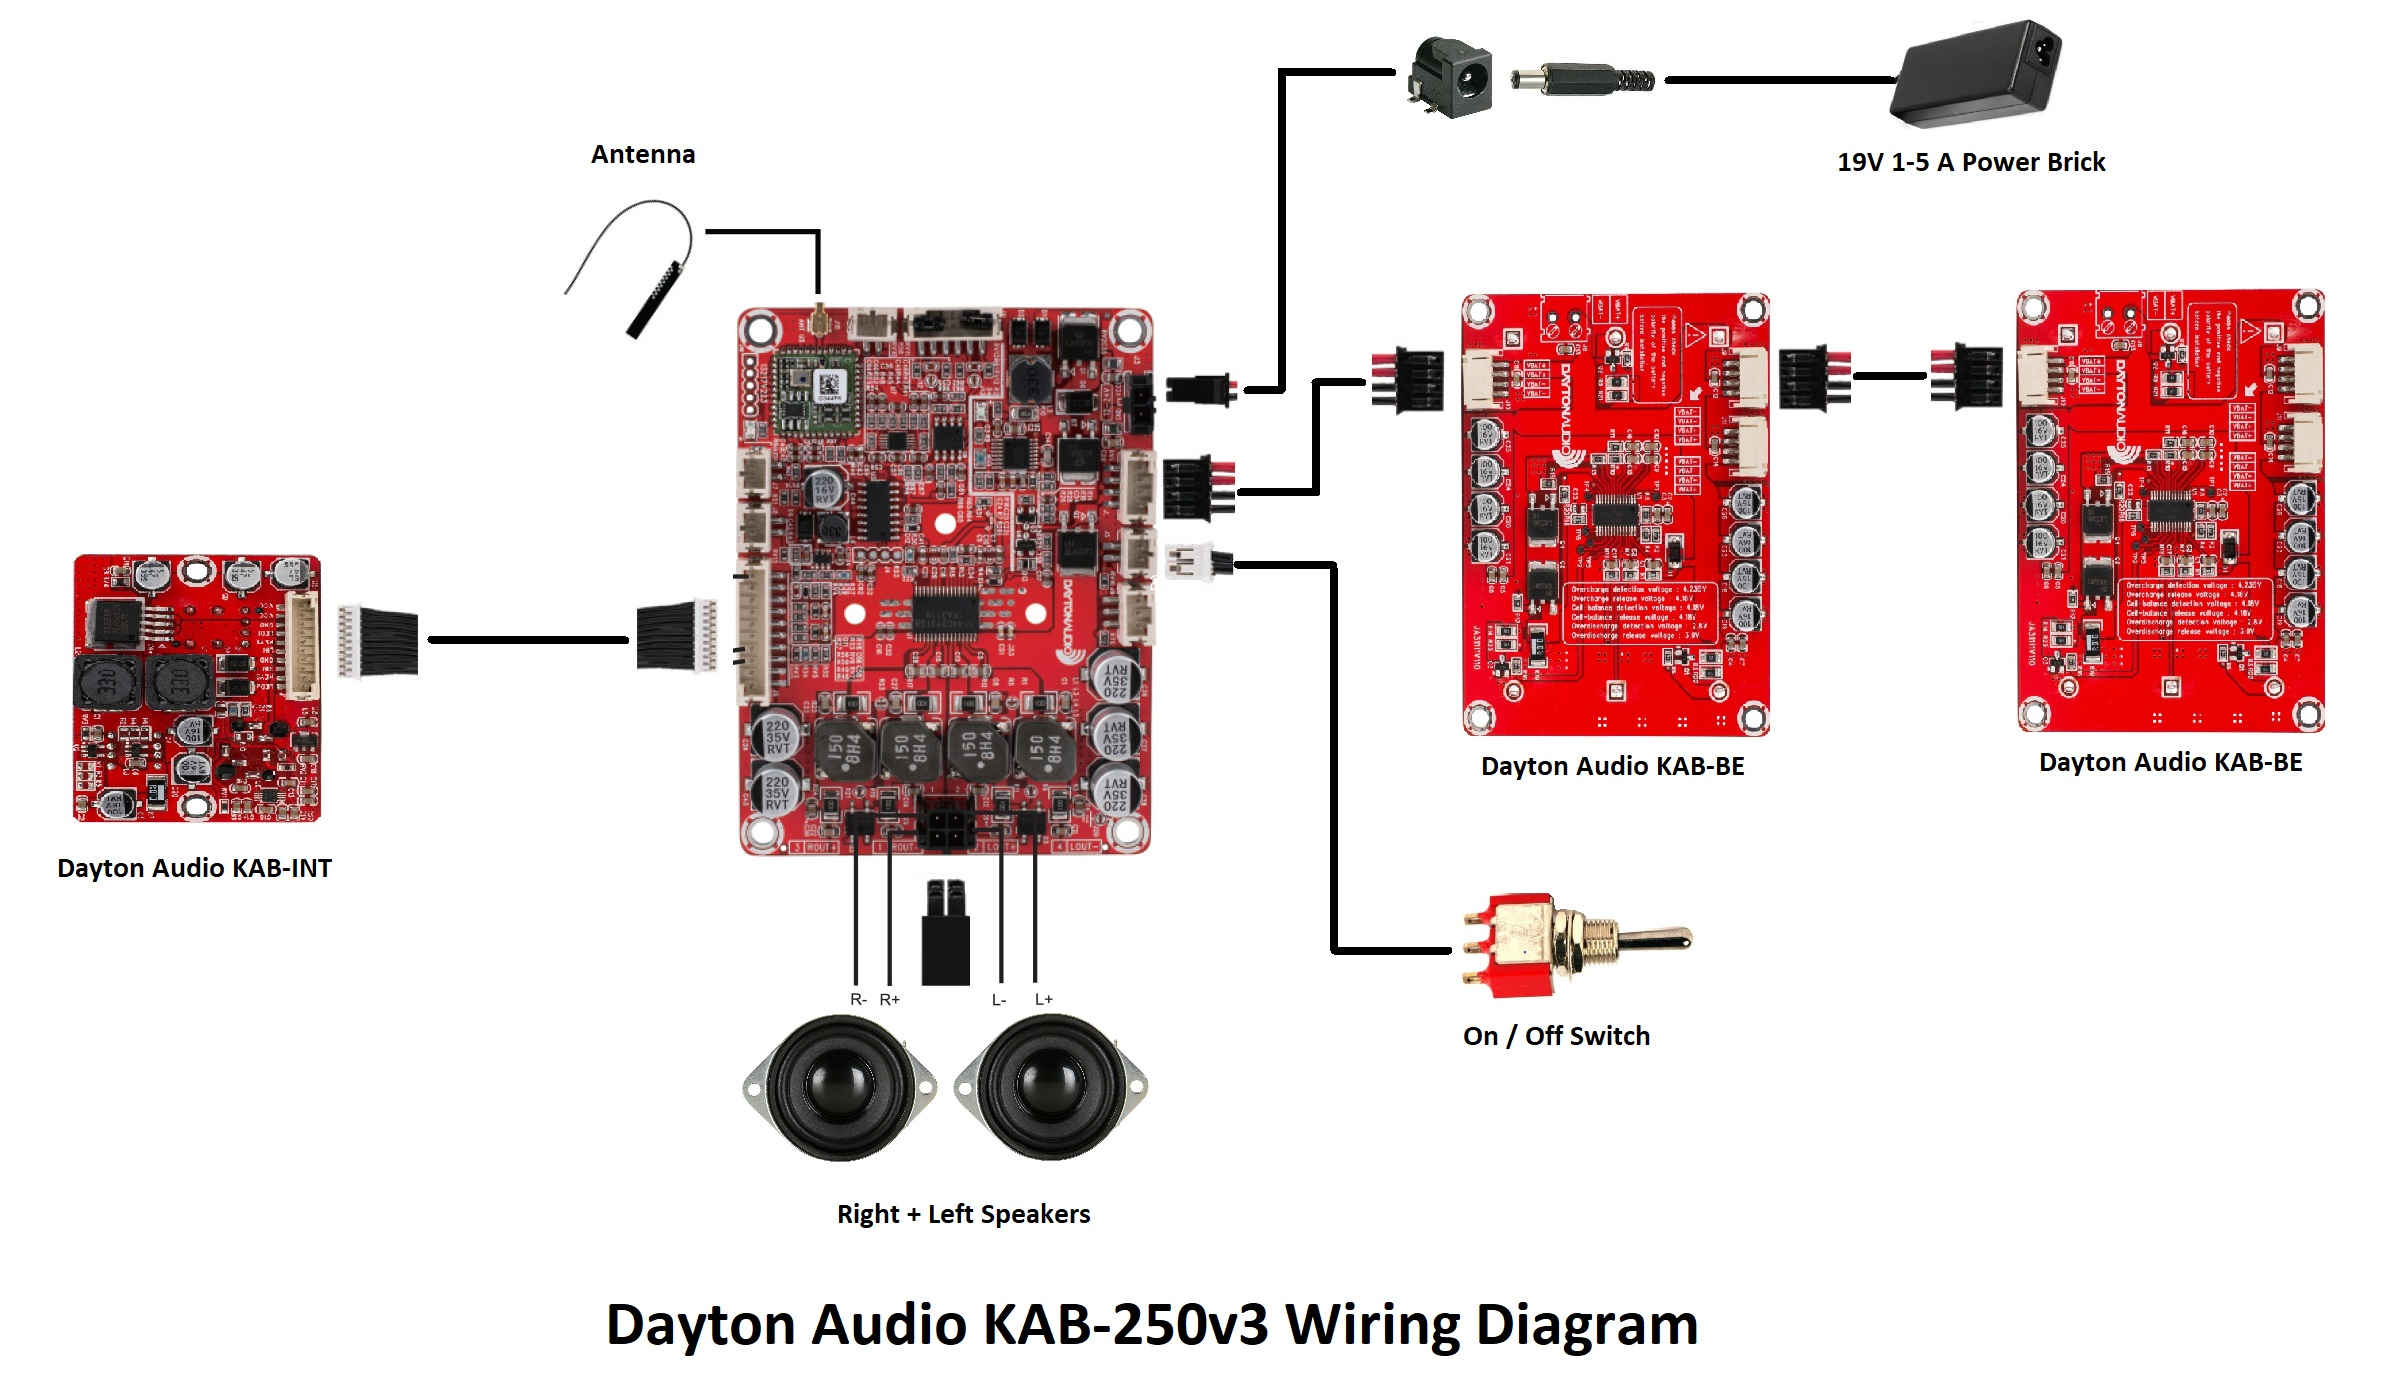 wiring diagram dayton audio kab-250v3 review